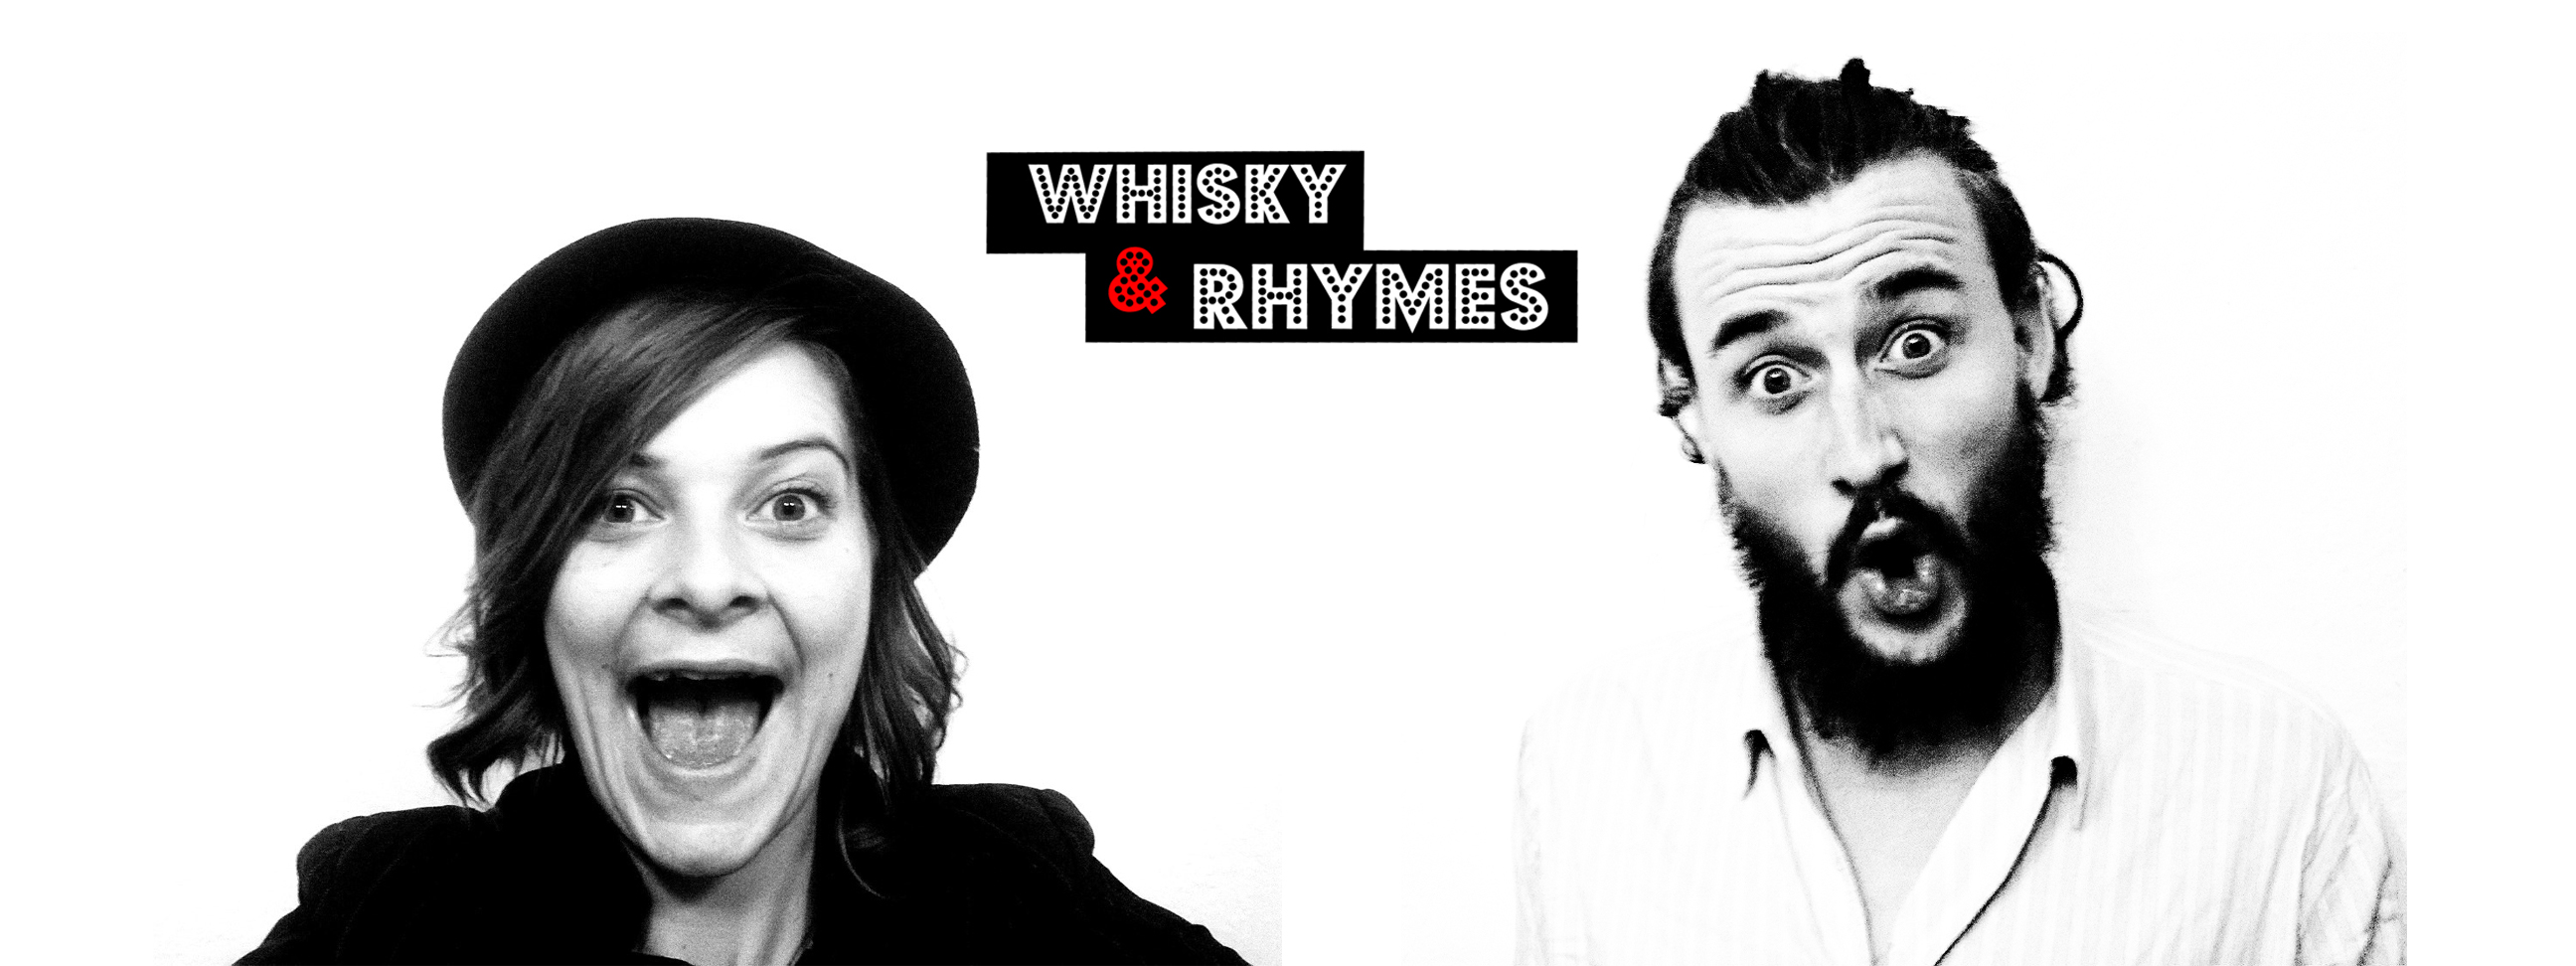 001 home whisky and rhymes